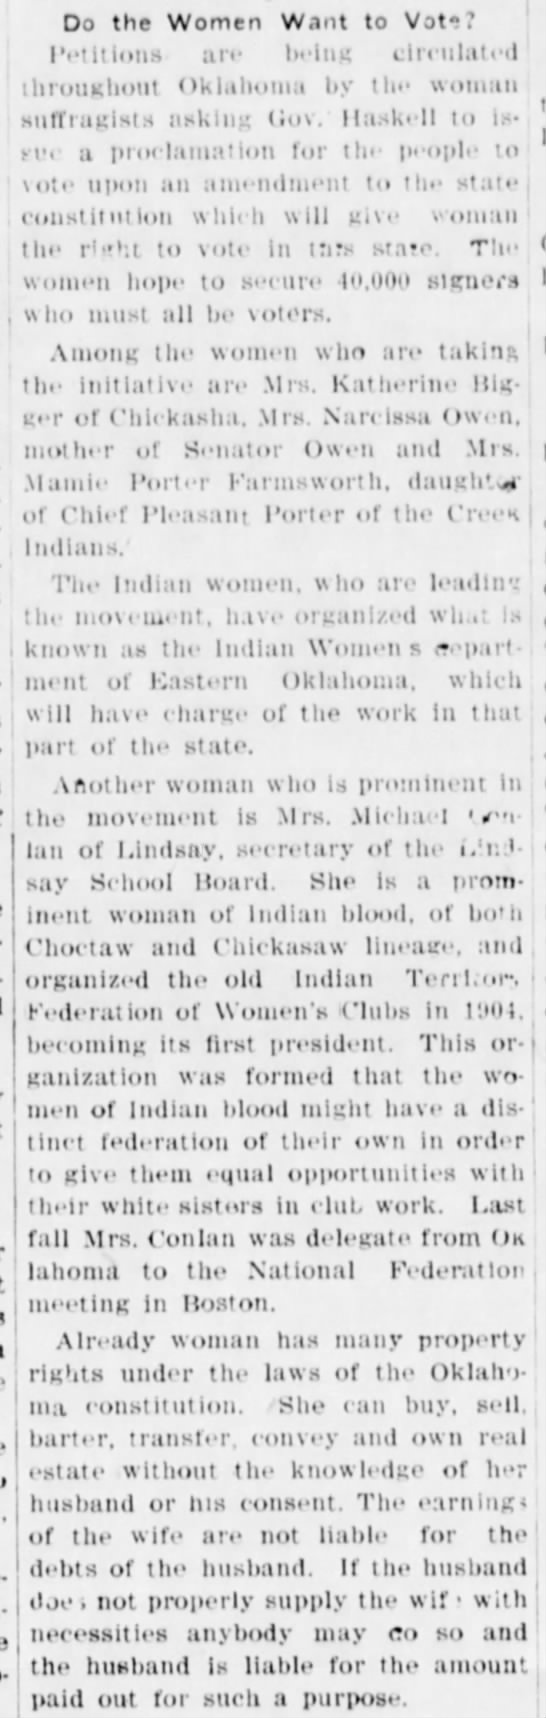 Do the Women Want to Vote? The Daily Ardmoreite (Ardmore, Oklahoma) May 24, 1909, p 3 -